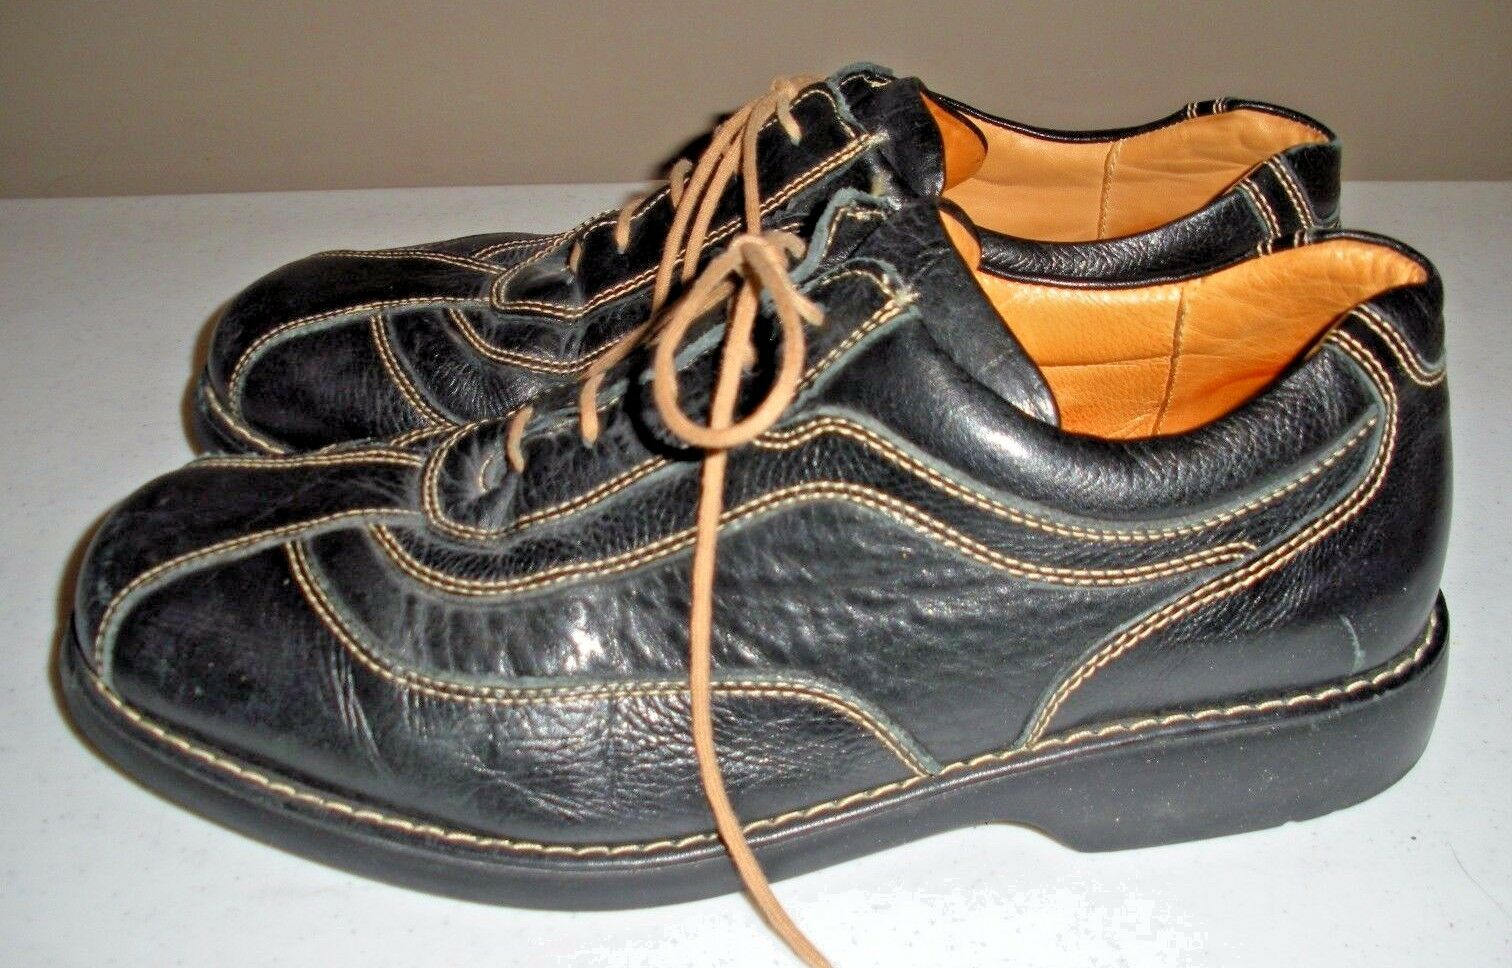 BOSTONIAN Black Leather Casual Loafer Shoes - Men's Size: 9 D - Shoes Made In Brazil e4a34e